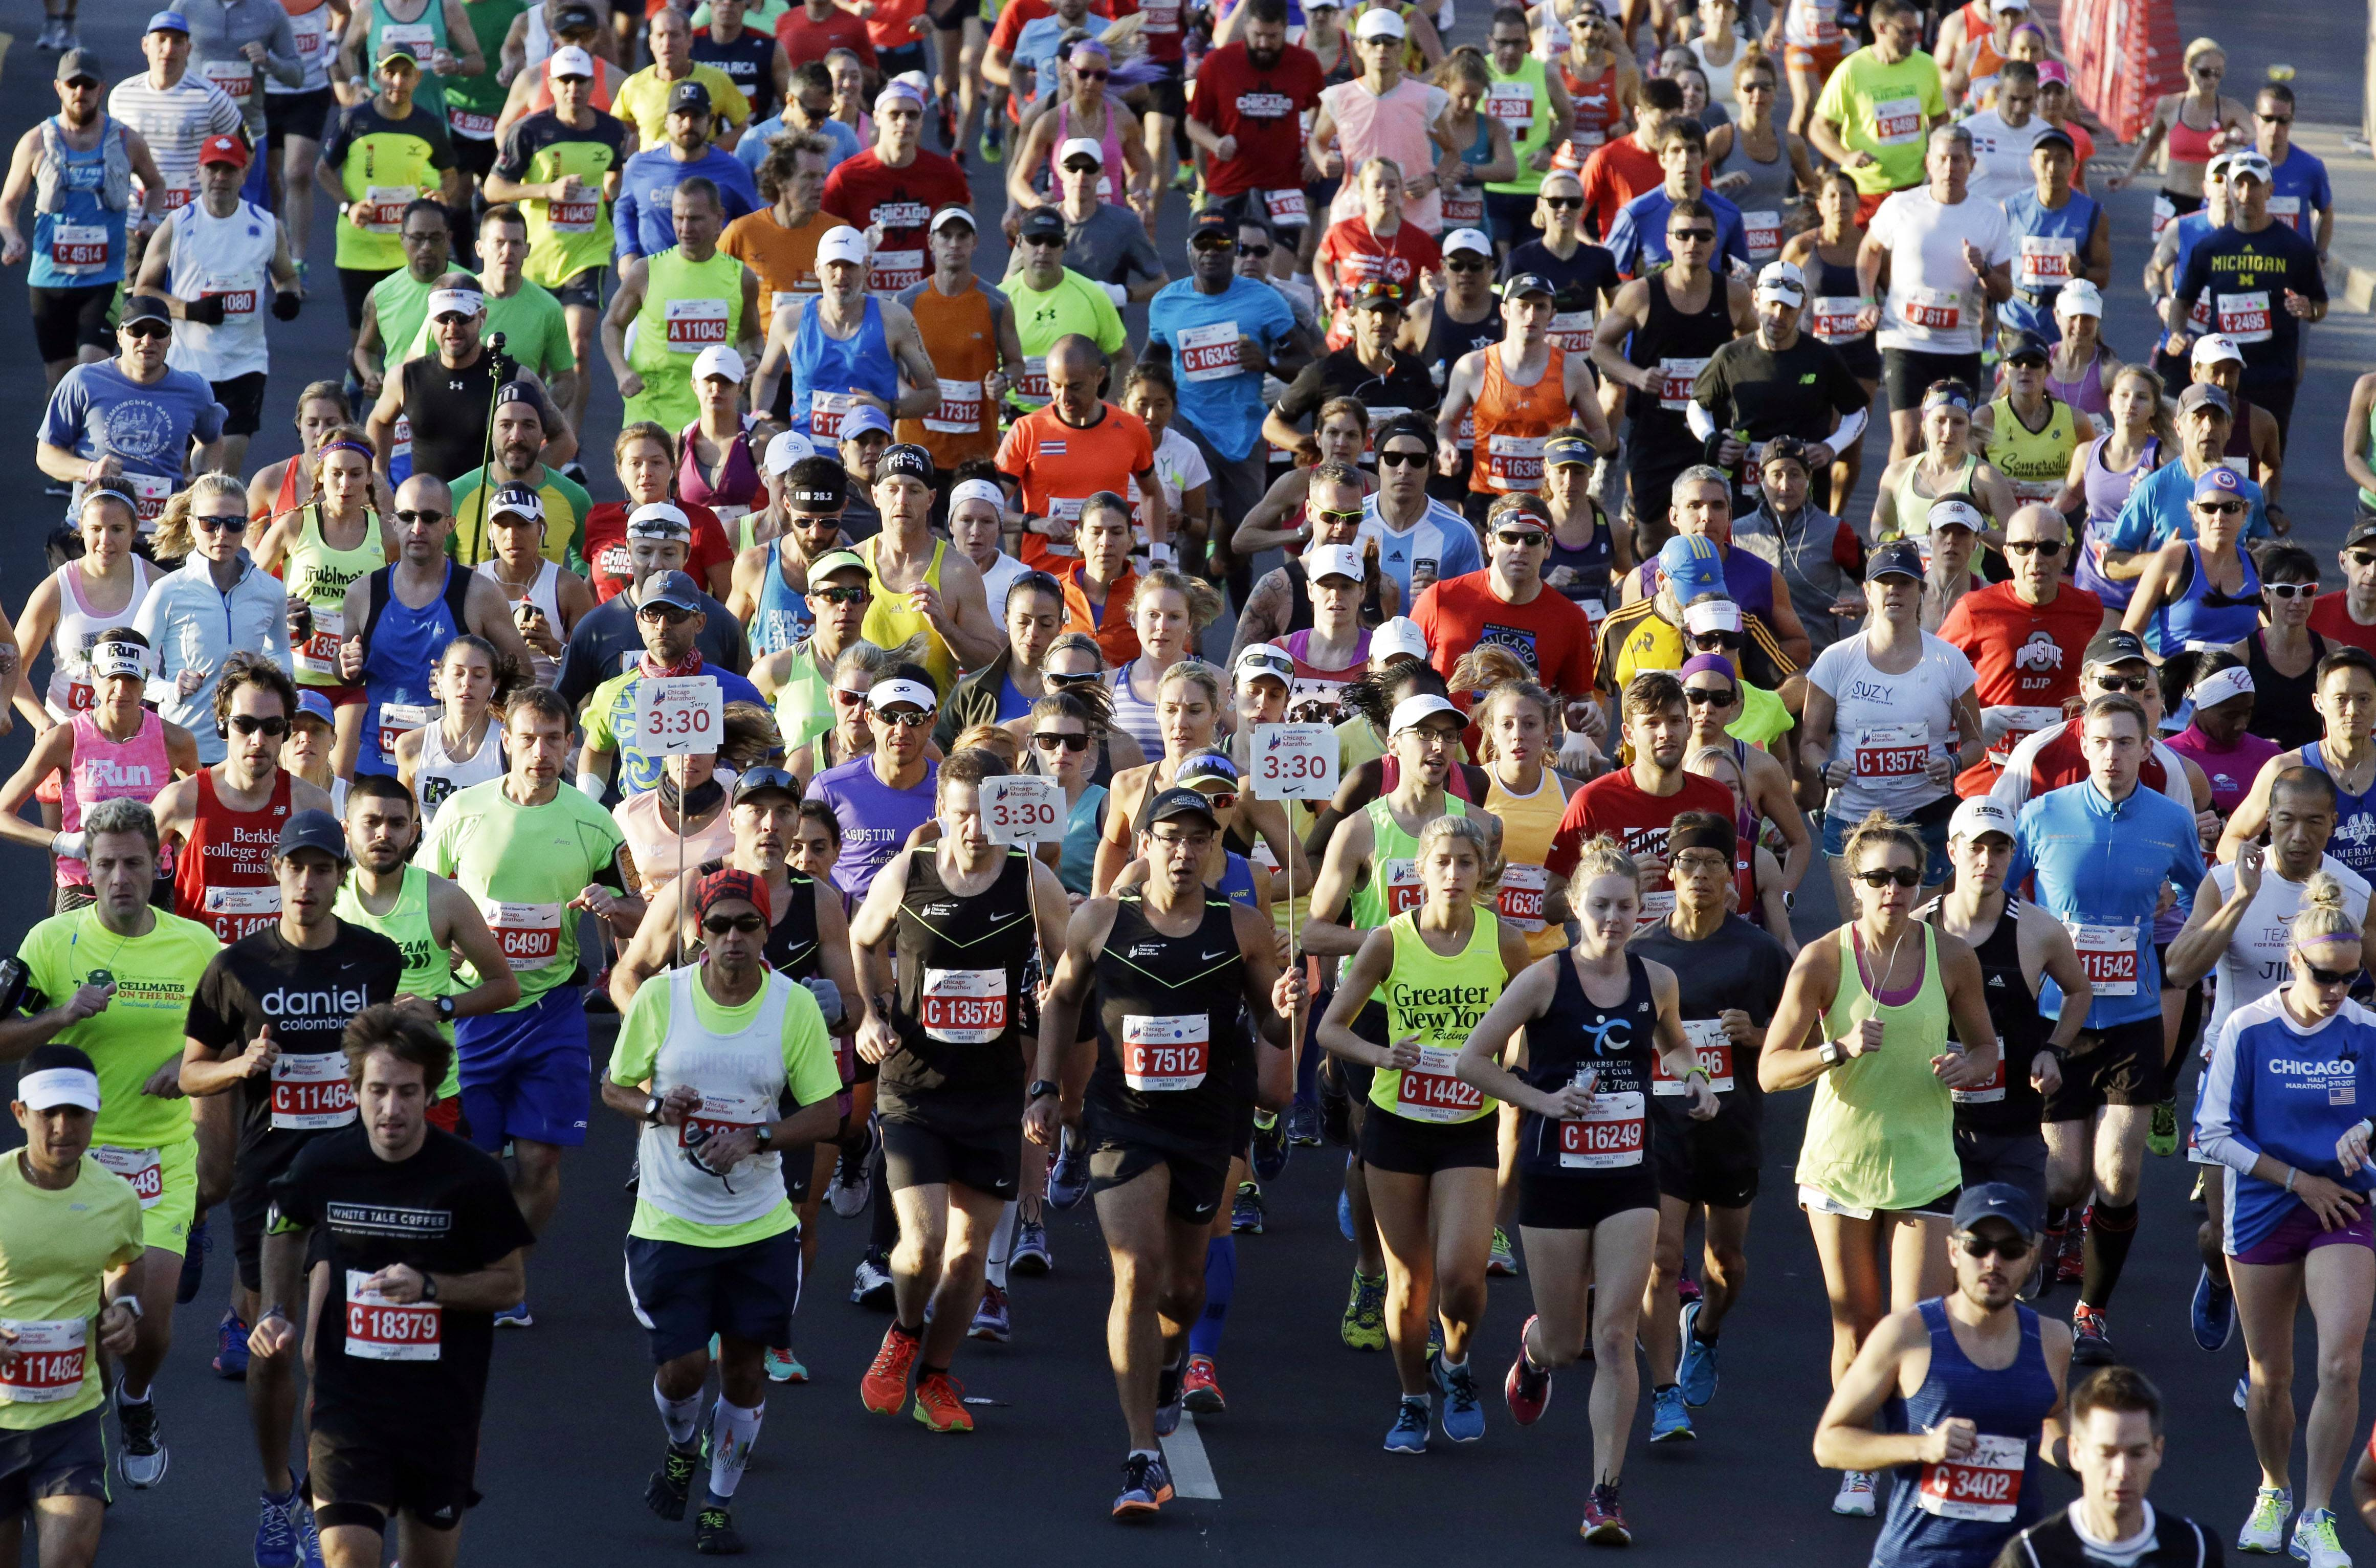 Runners participate in the Chicago Marathon, Sunday, Oct. 11, 2015, in Chicago.